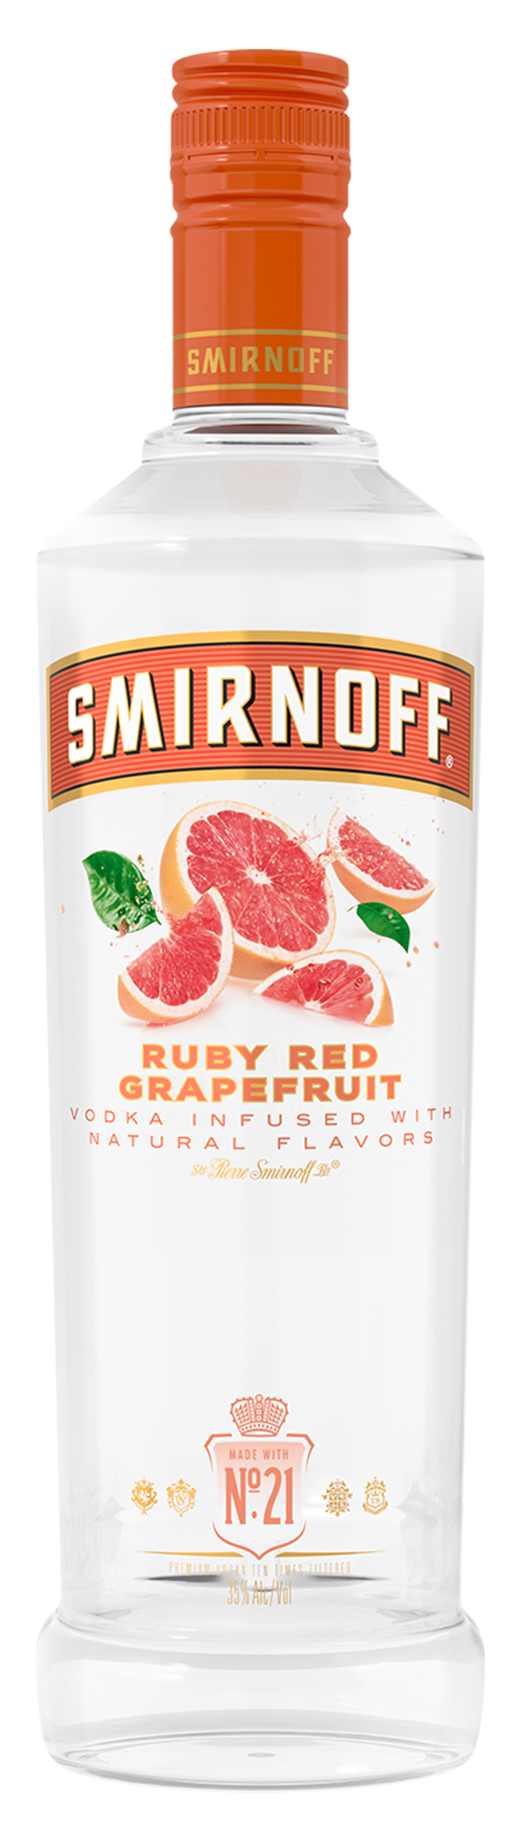 SMIRNOFF RUBY RED GRAPEFRUIT